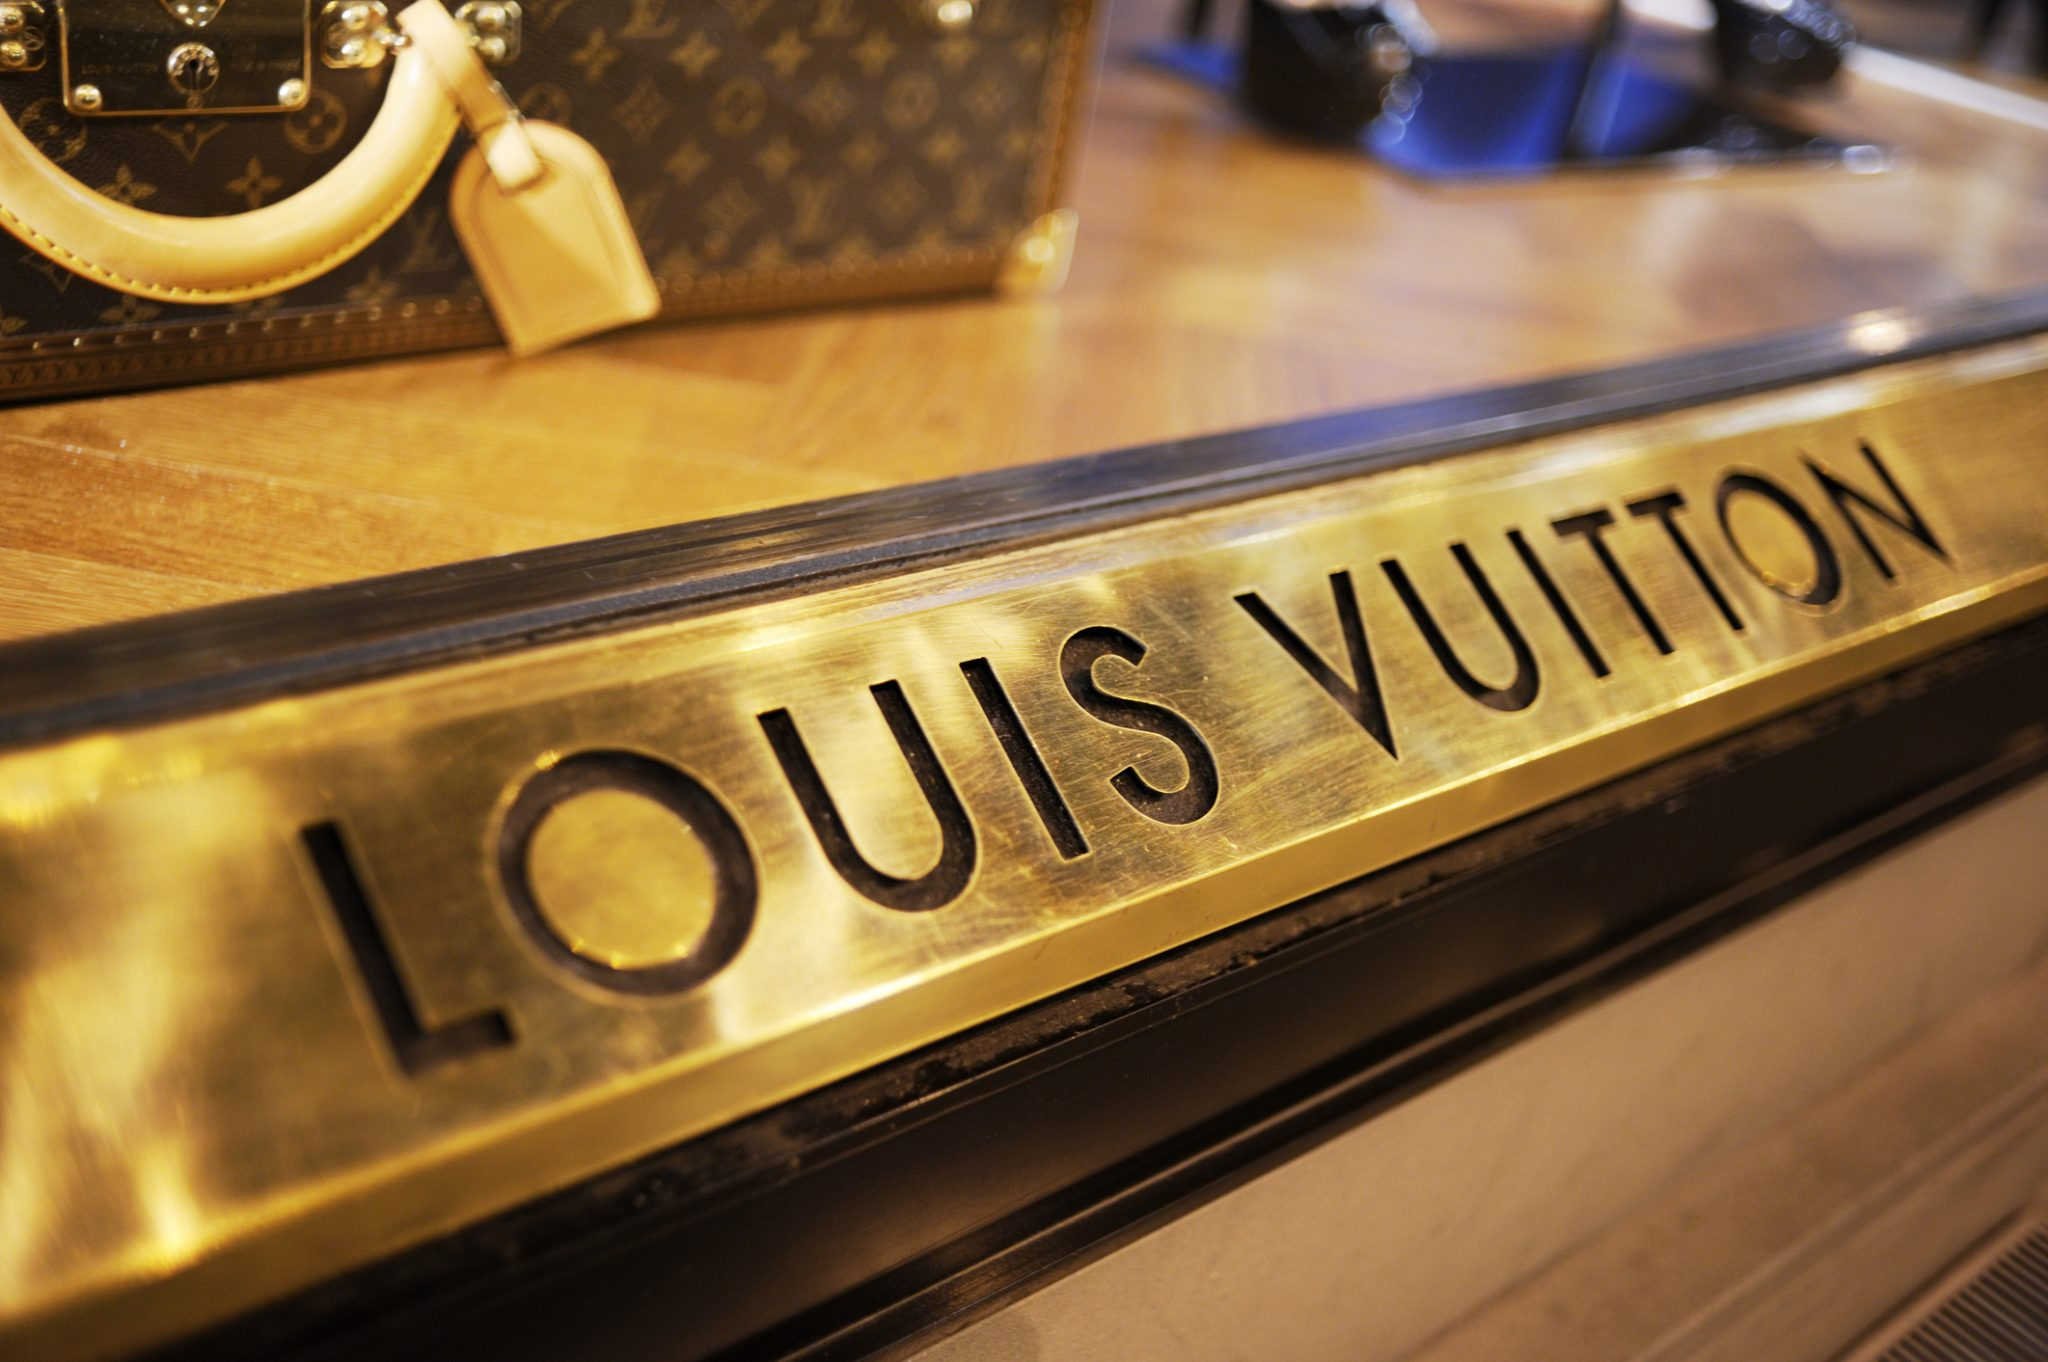 Louis Vuitton LVMH Bourse semestre